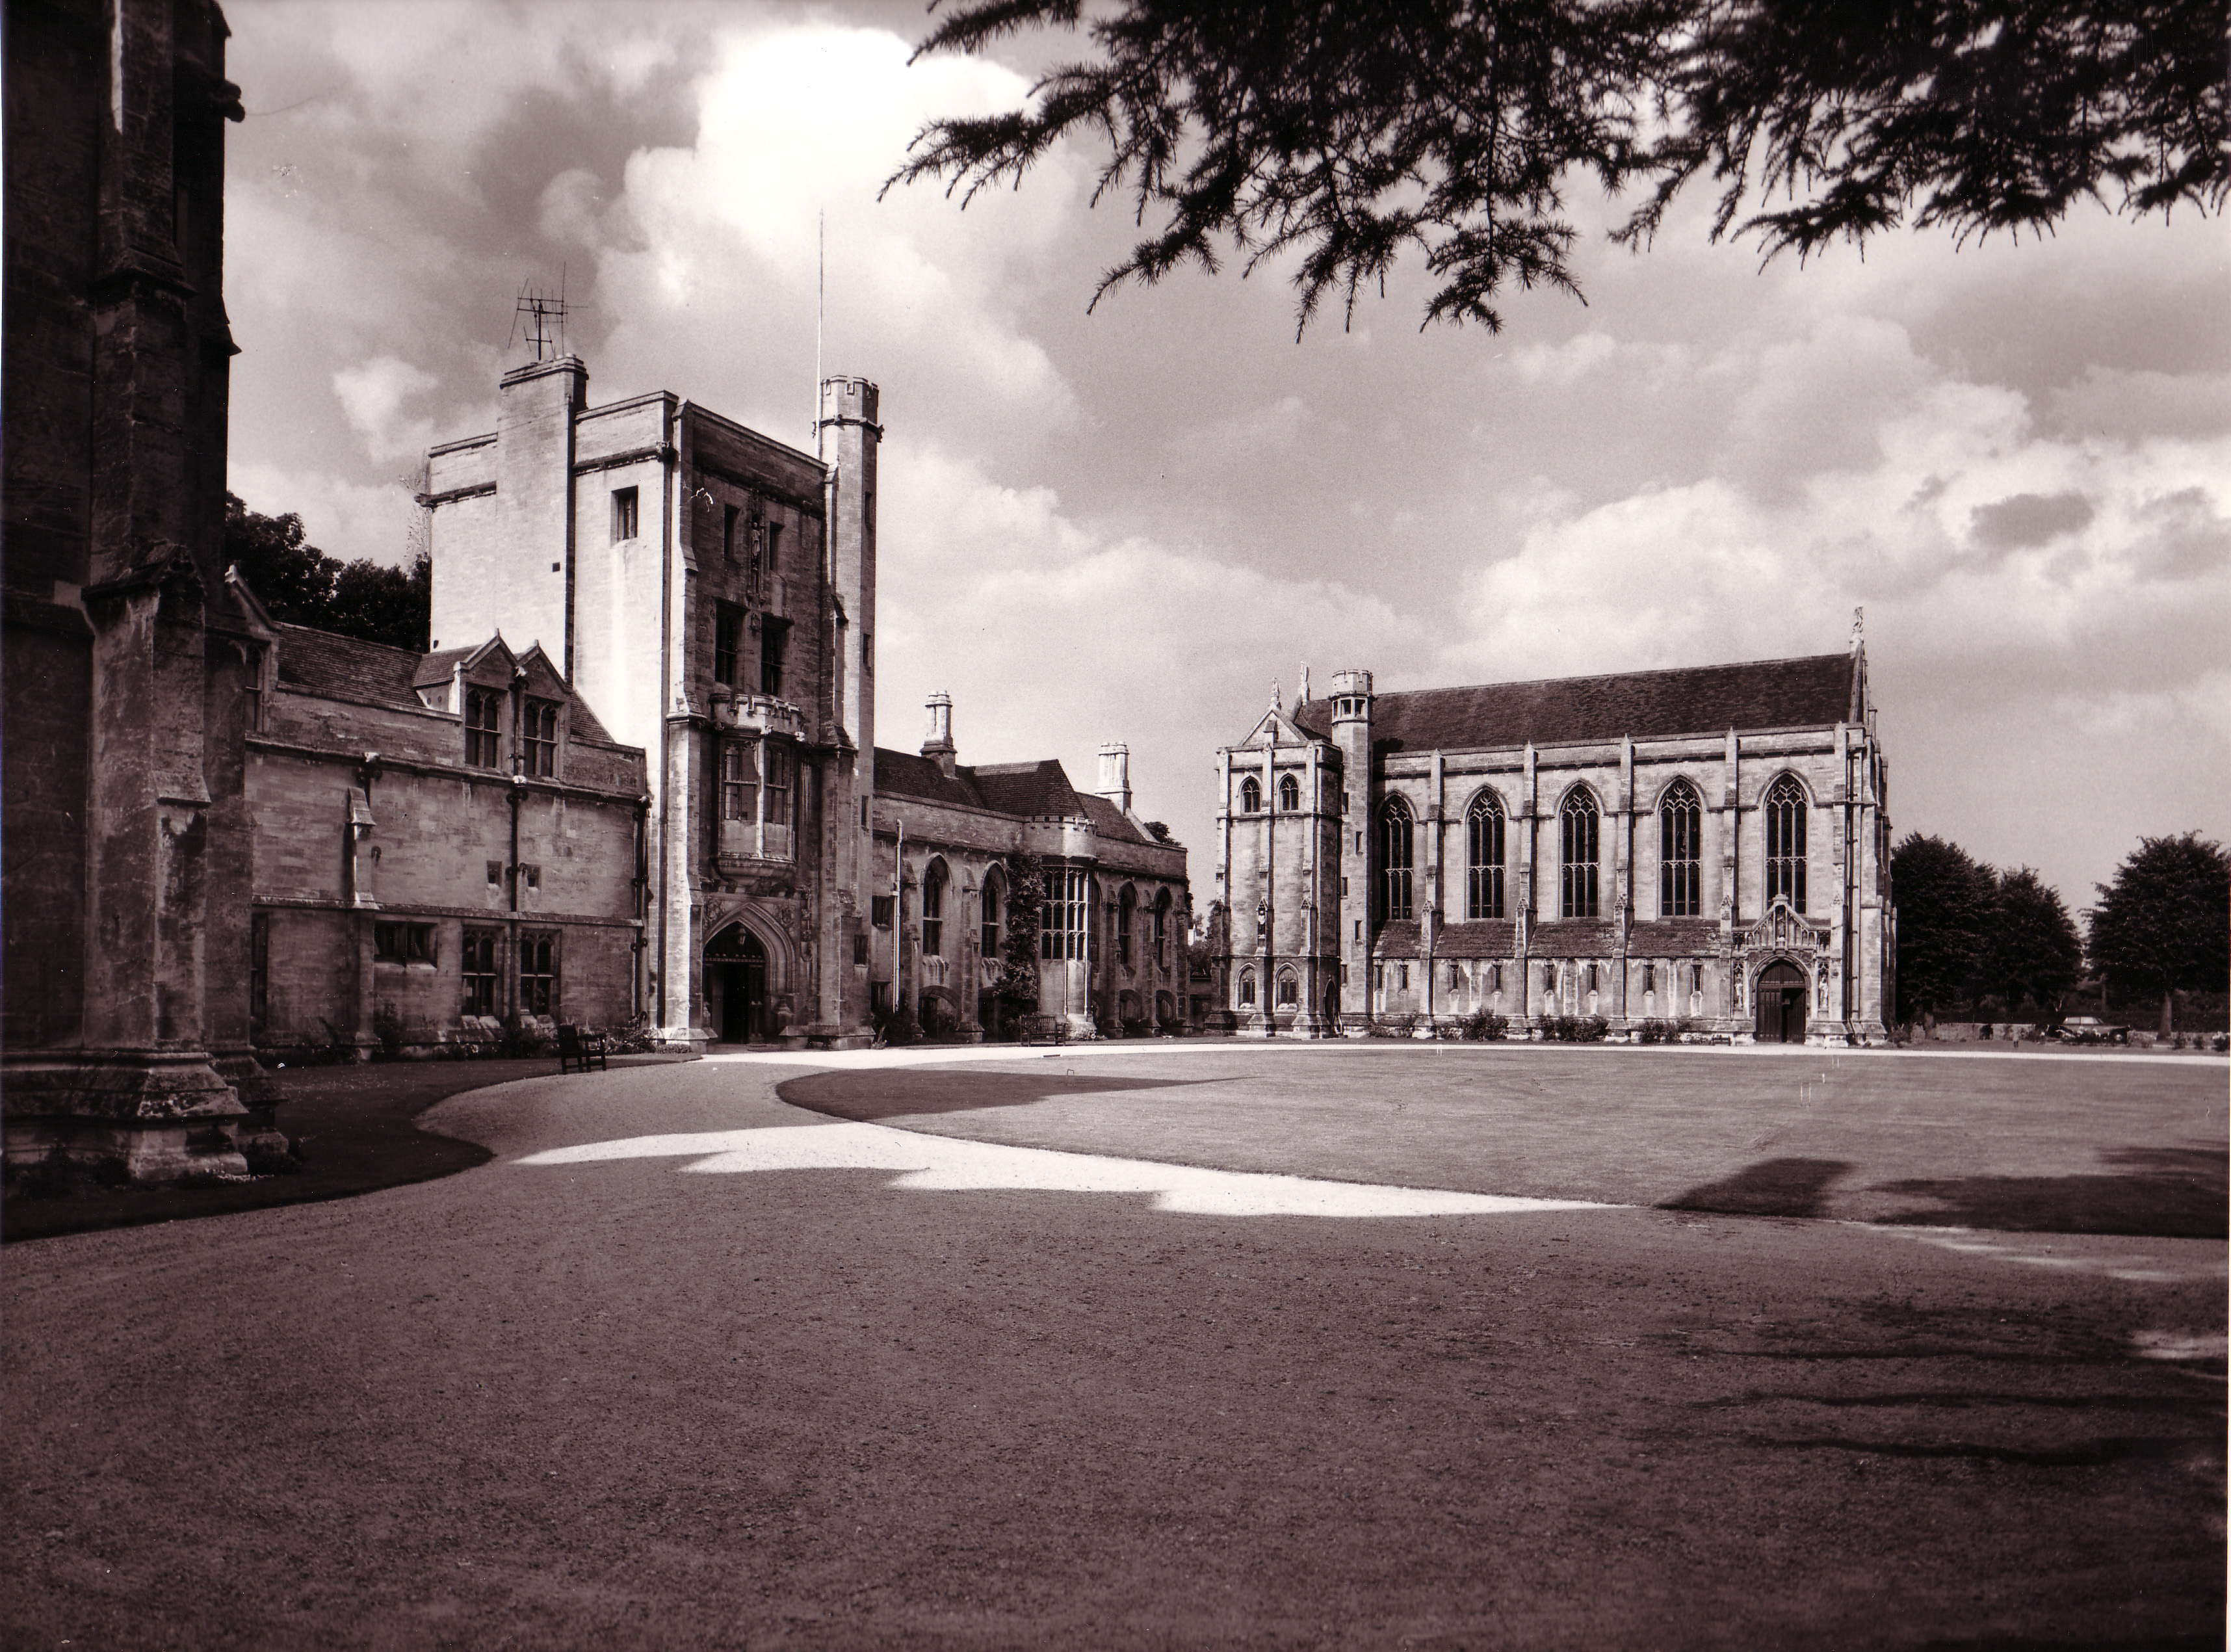 A monochrome photograph of the Mansfield quad in the early 20th century. The photo is taken from outside the Principal's Lodging, facing across the quad towards the Chapel and the Main Building.